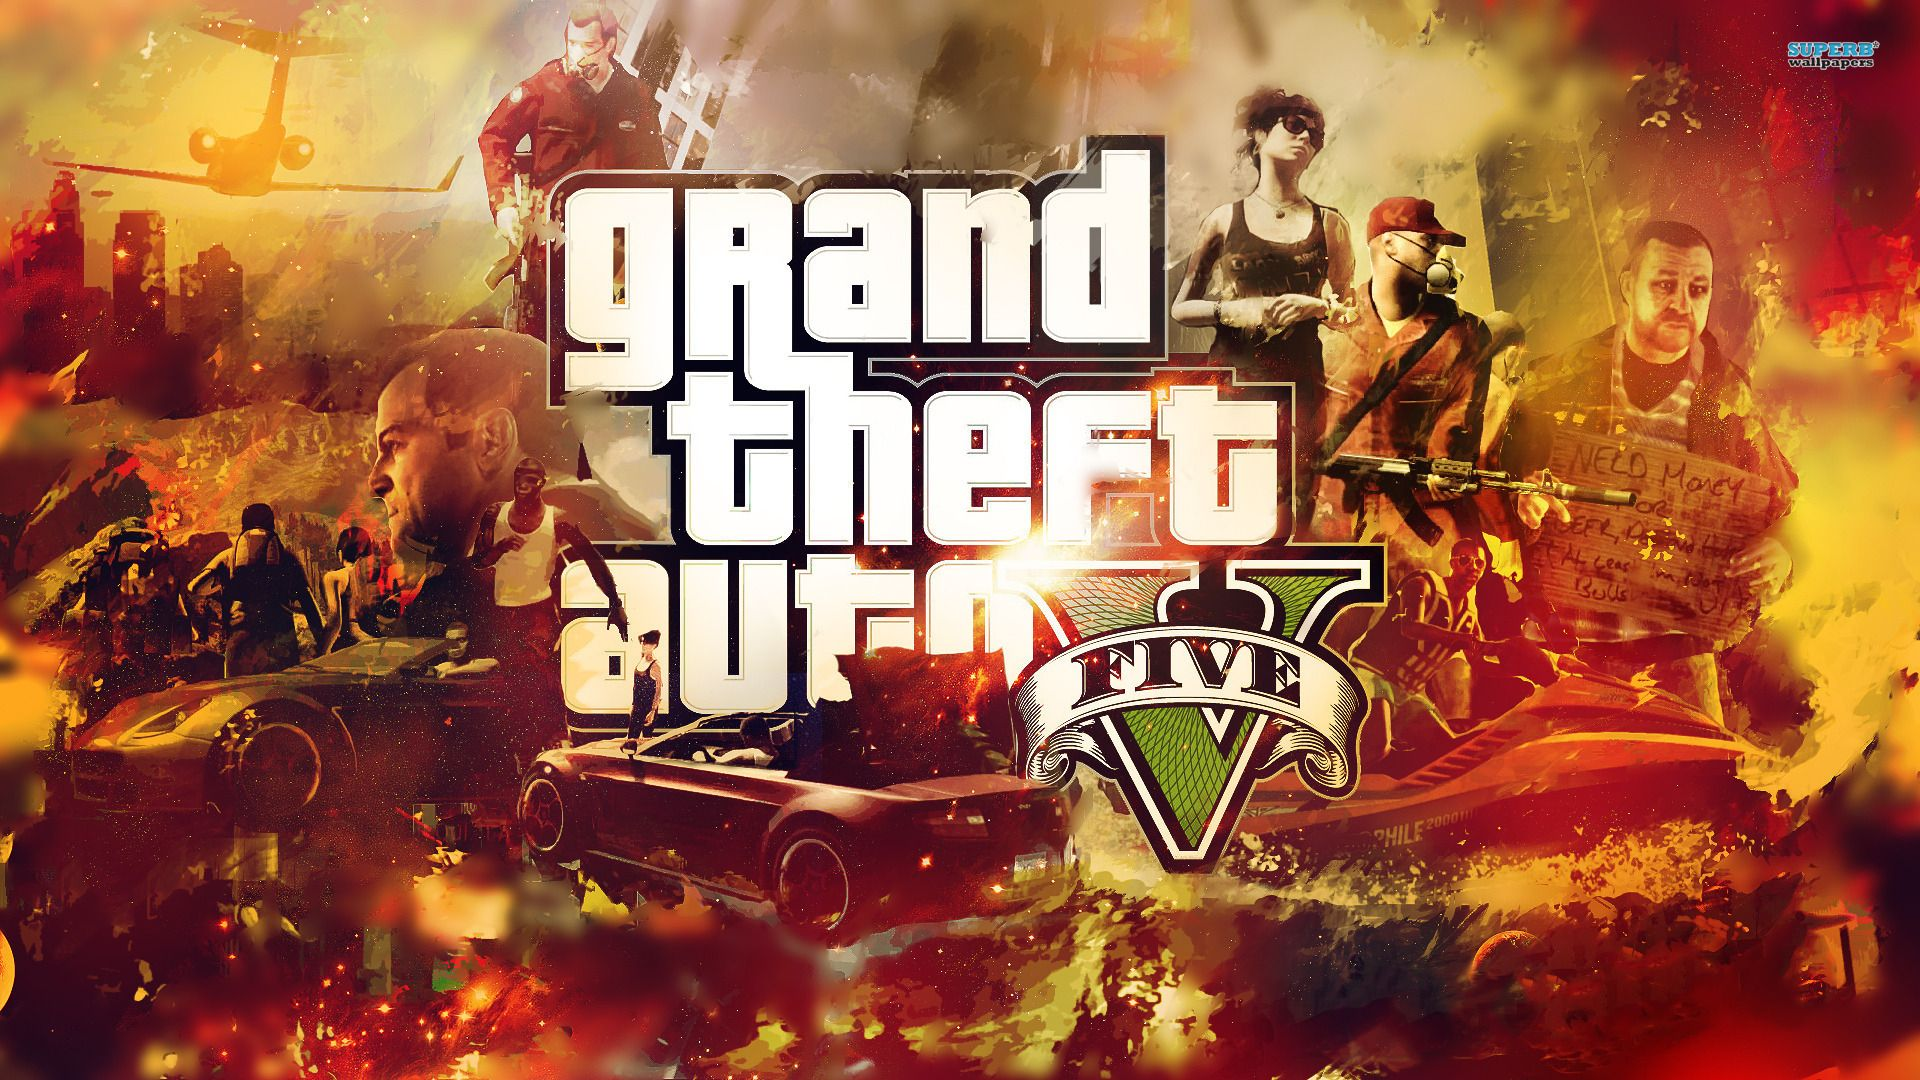 Grand Theft Auto V Wallpaper wallpapers Freshwallpapers